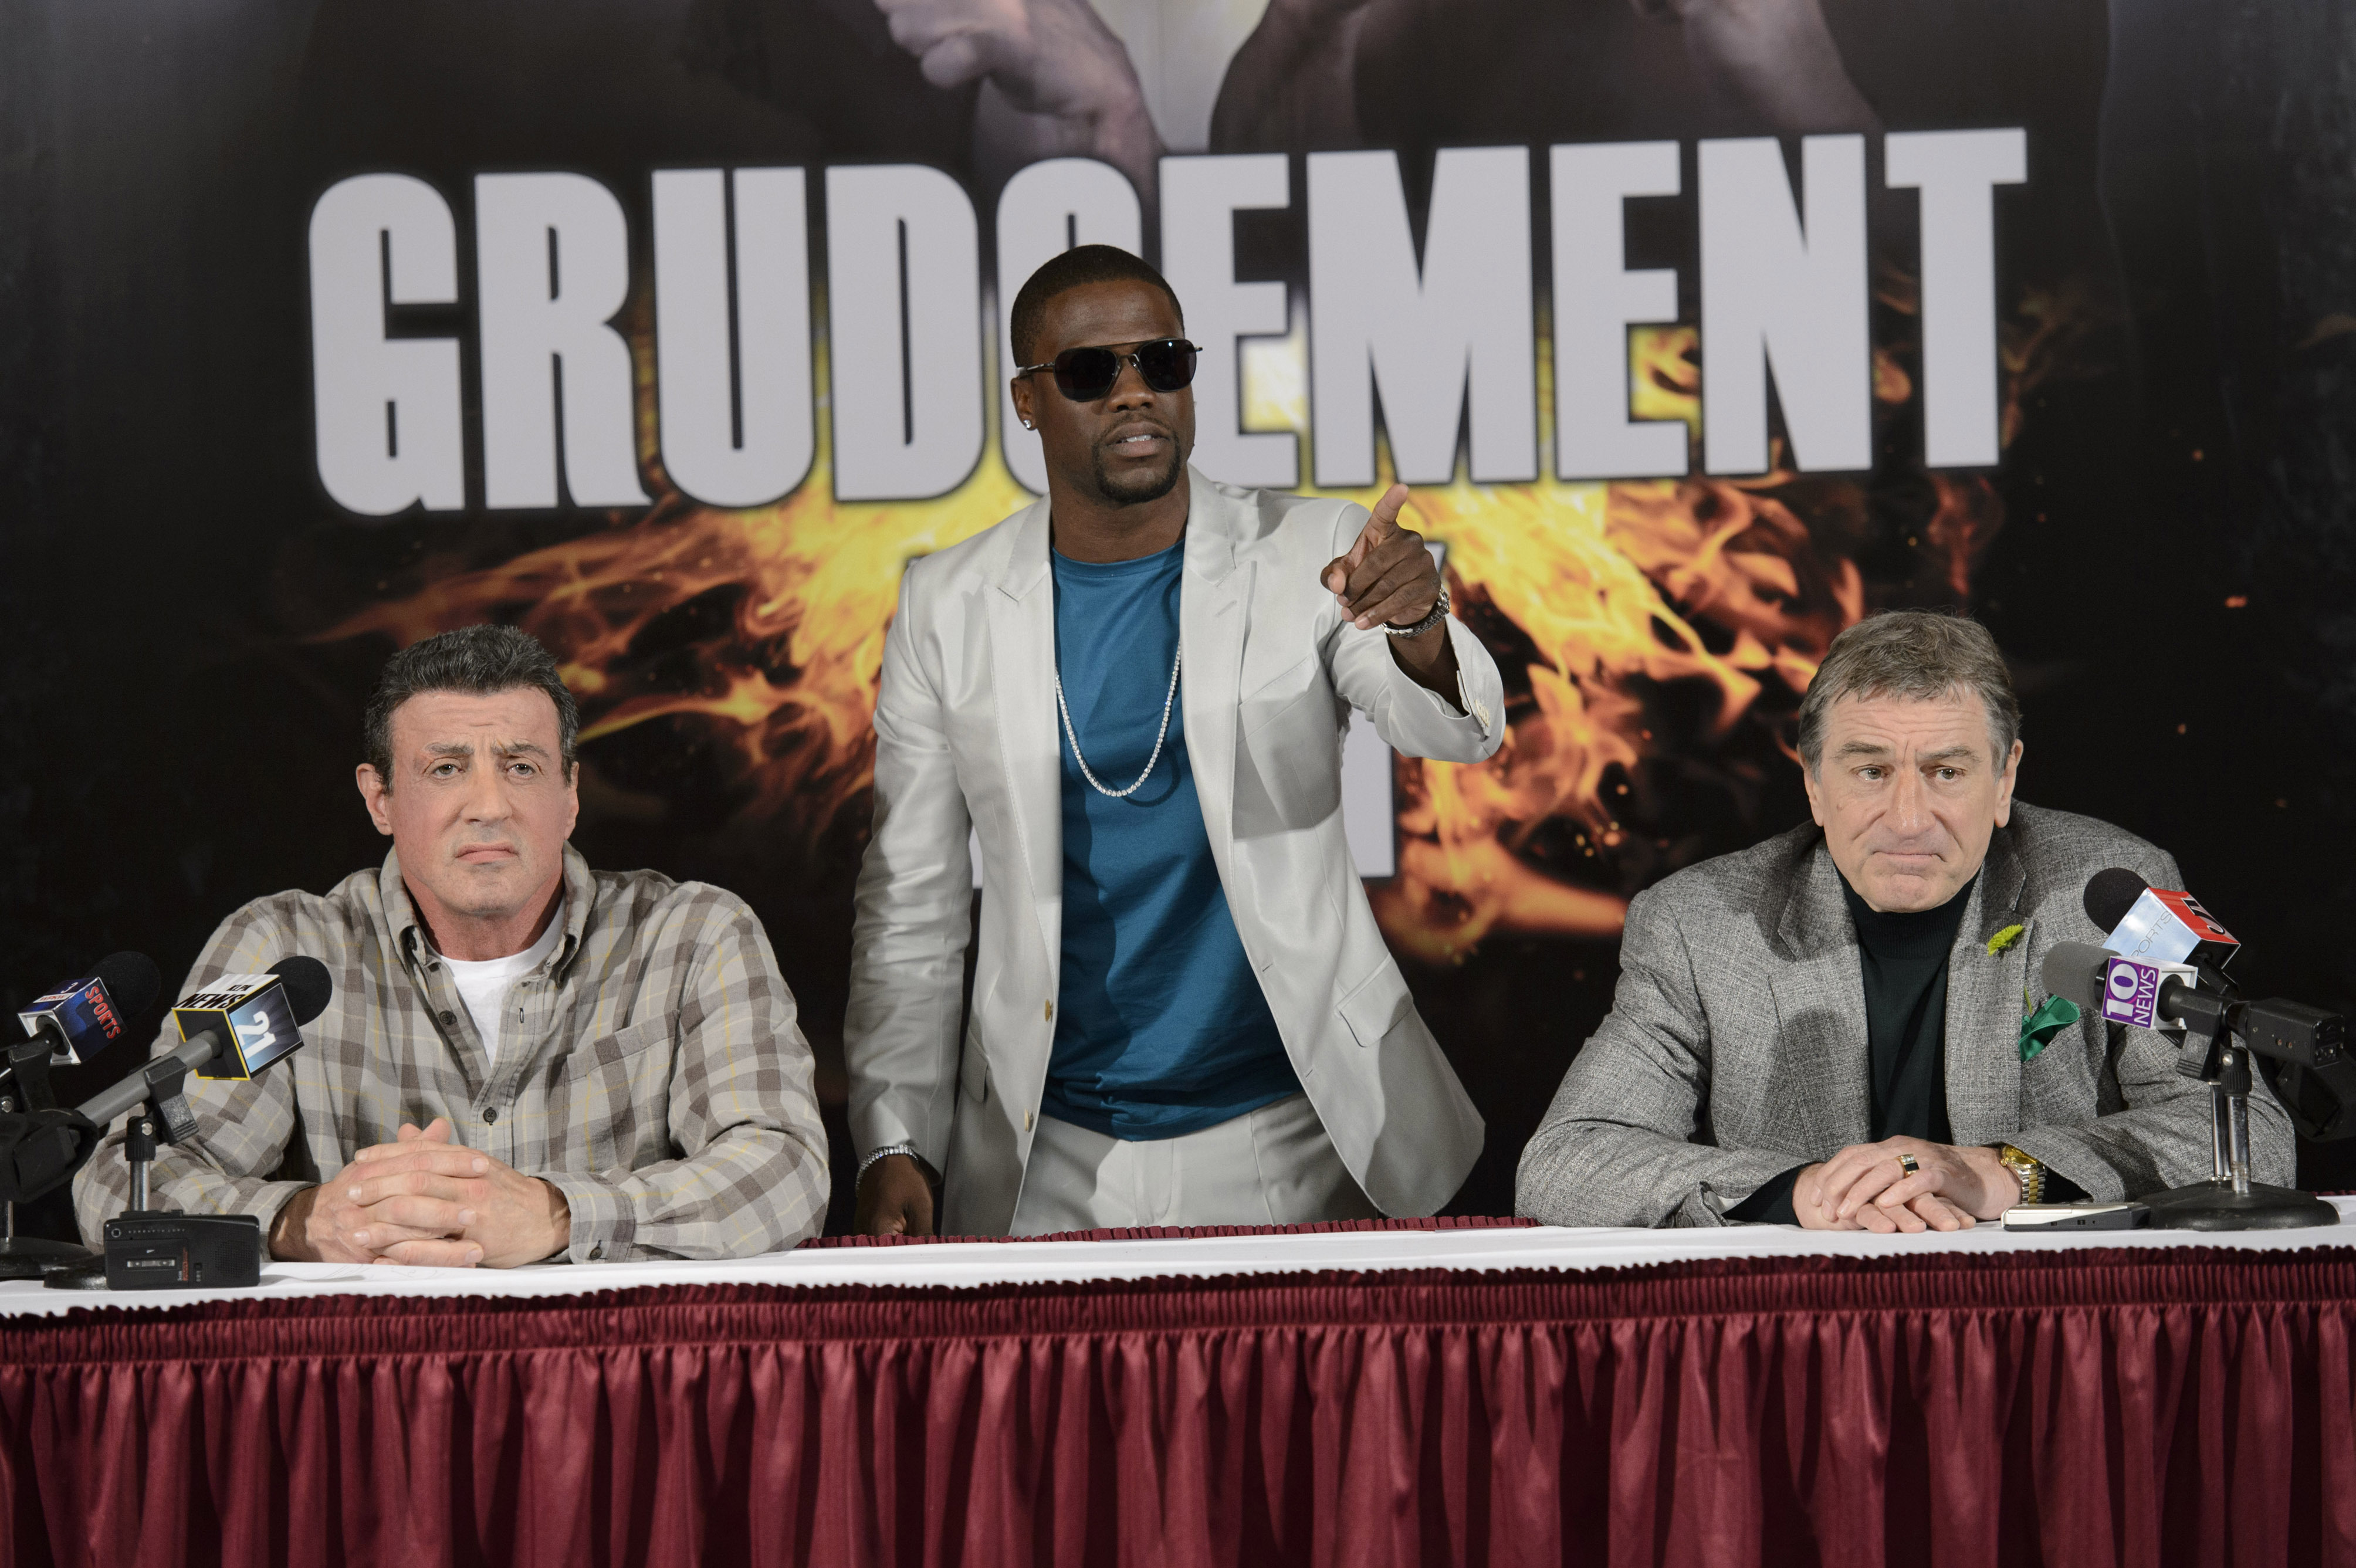 The Grudge Match - Kevin Hart, Robert De Niro and Sylvester Stallone